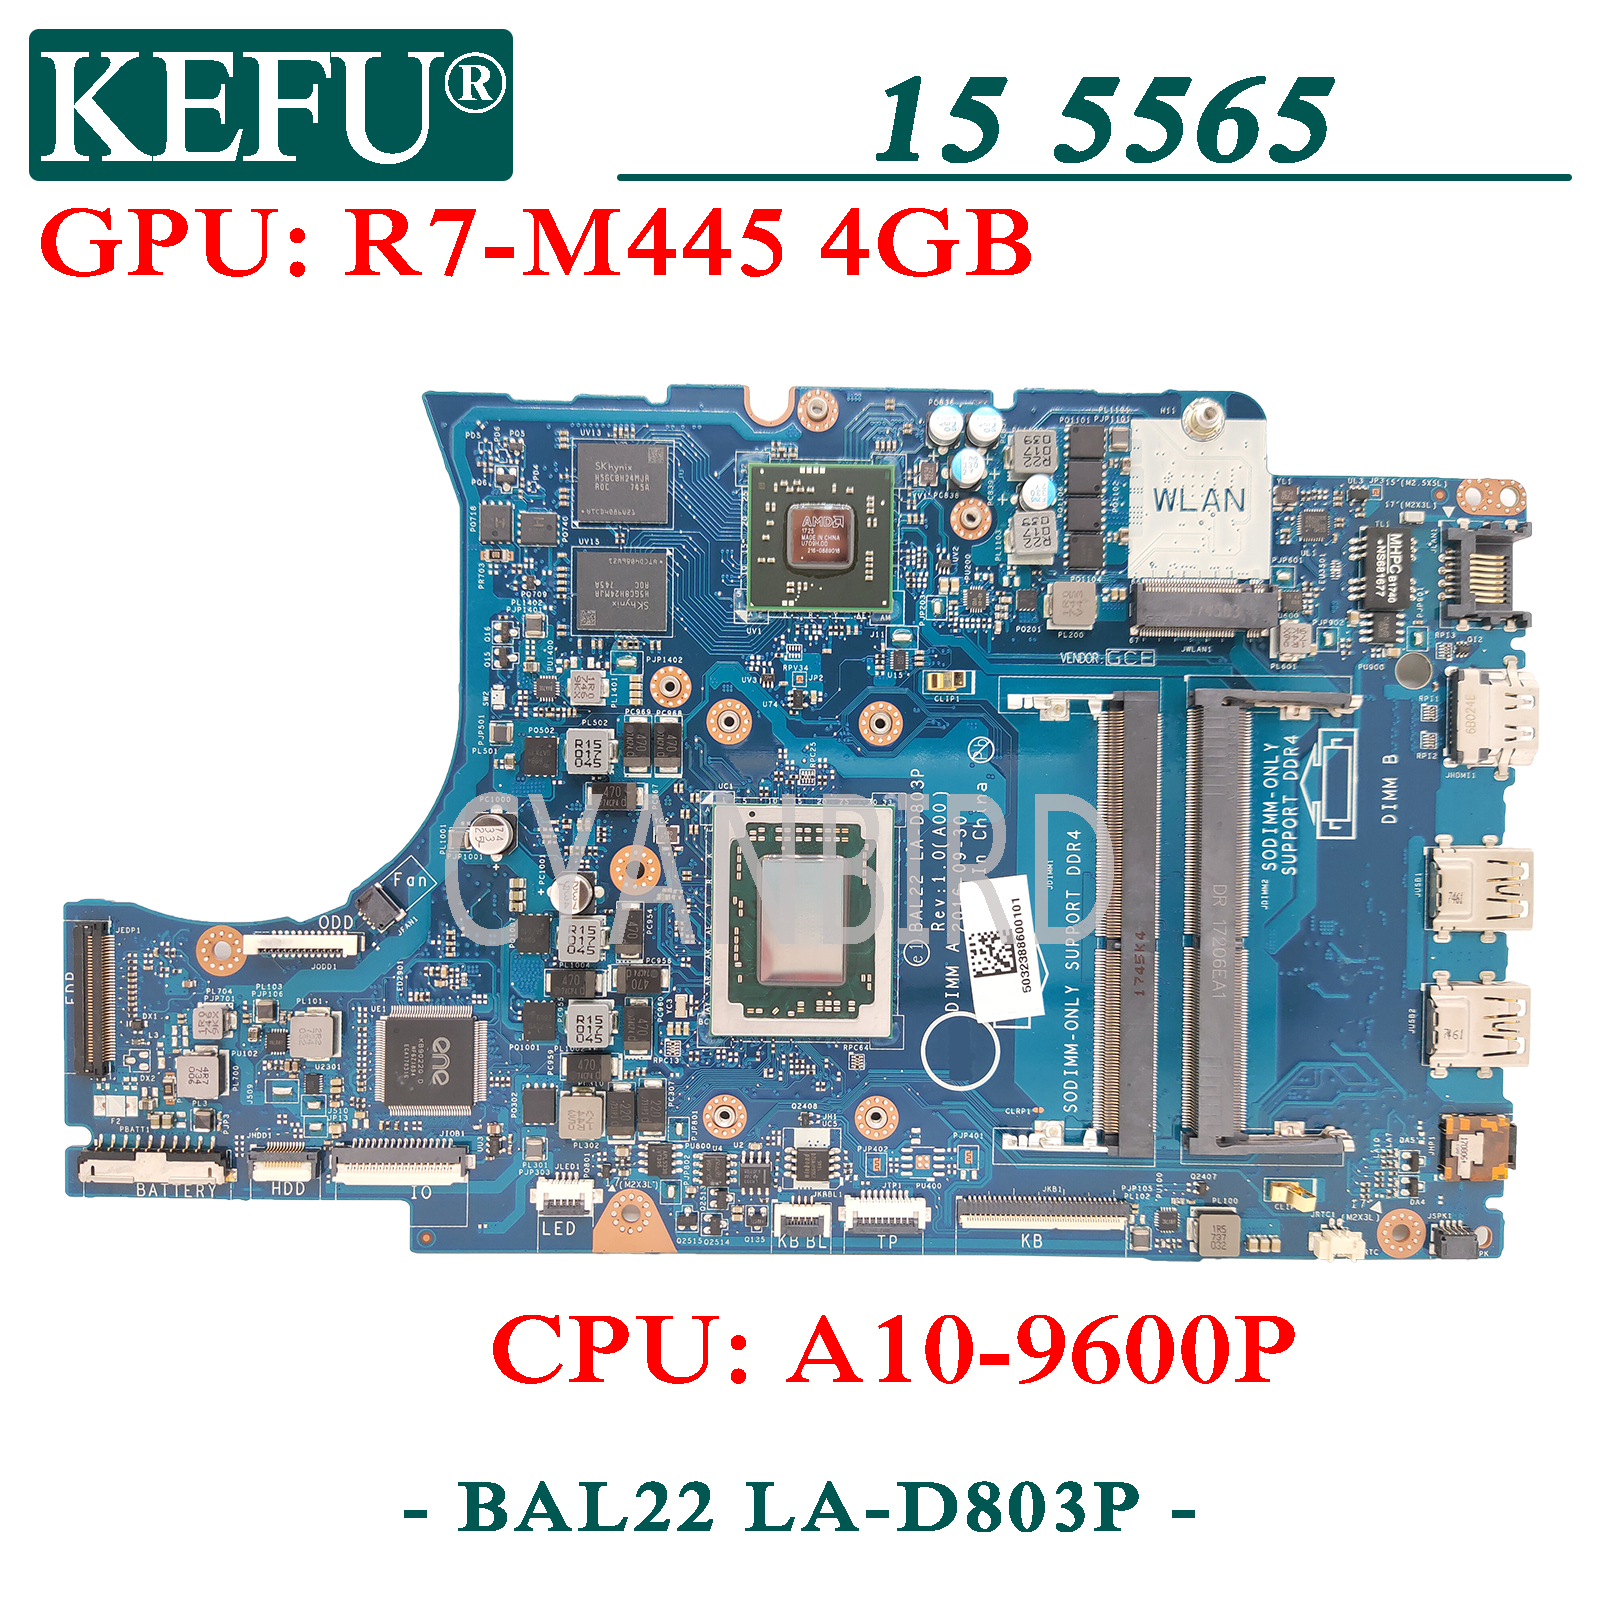 KEFU LA-D803P original mainboard for Dell Inspiron 5565 with A10-9600P R7-M445 4GB Laptop motherboard 1